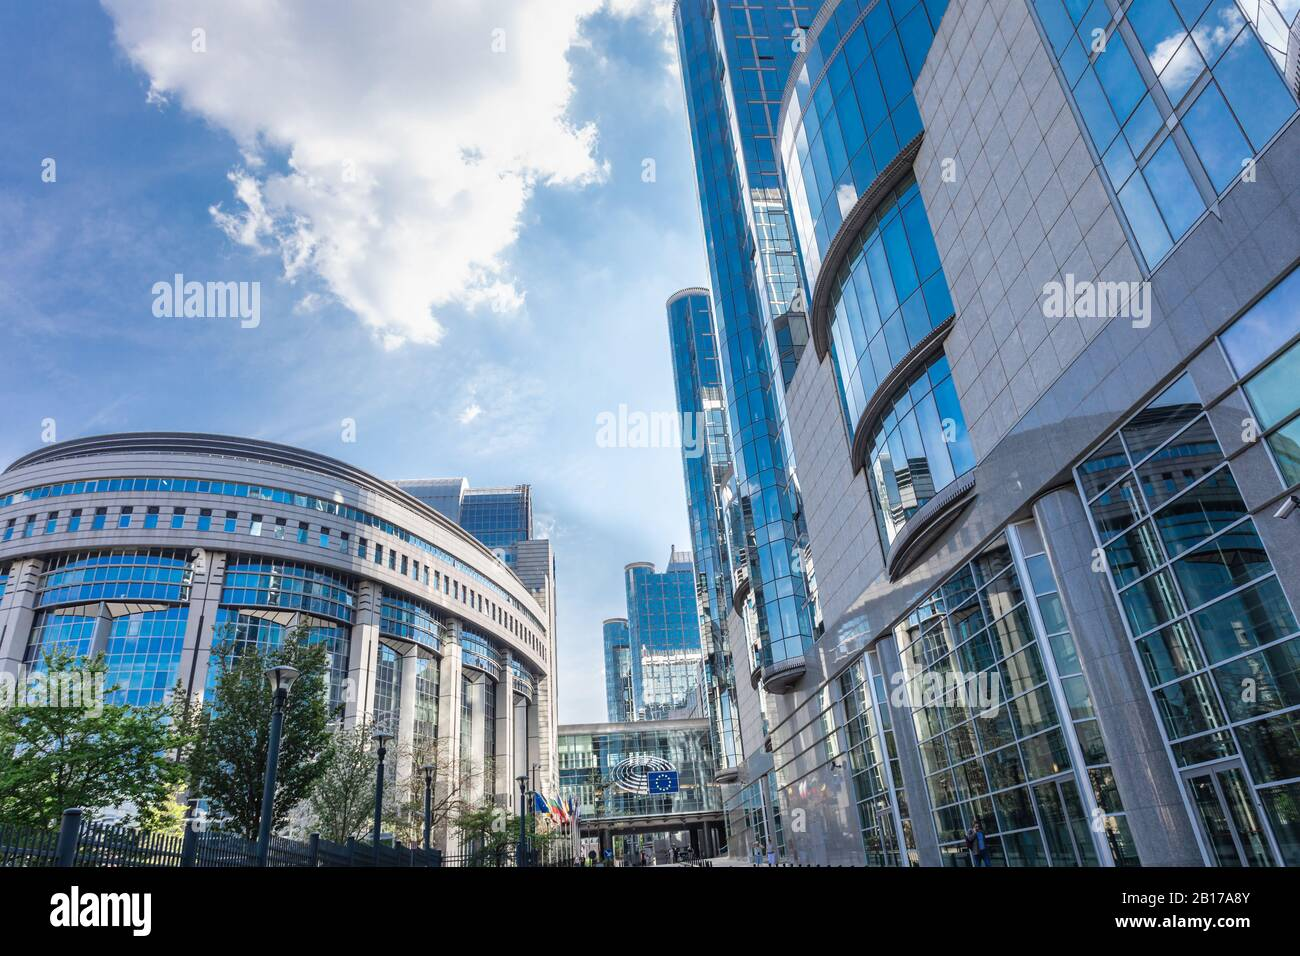 Building of European Parliament in Brussels, Belgium. European commission building. Symbol of European Union. Stock Photo